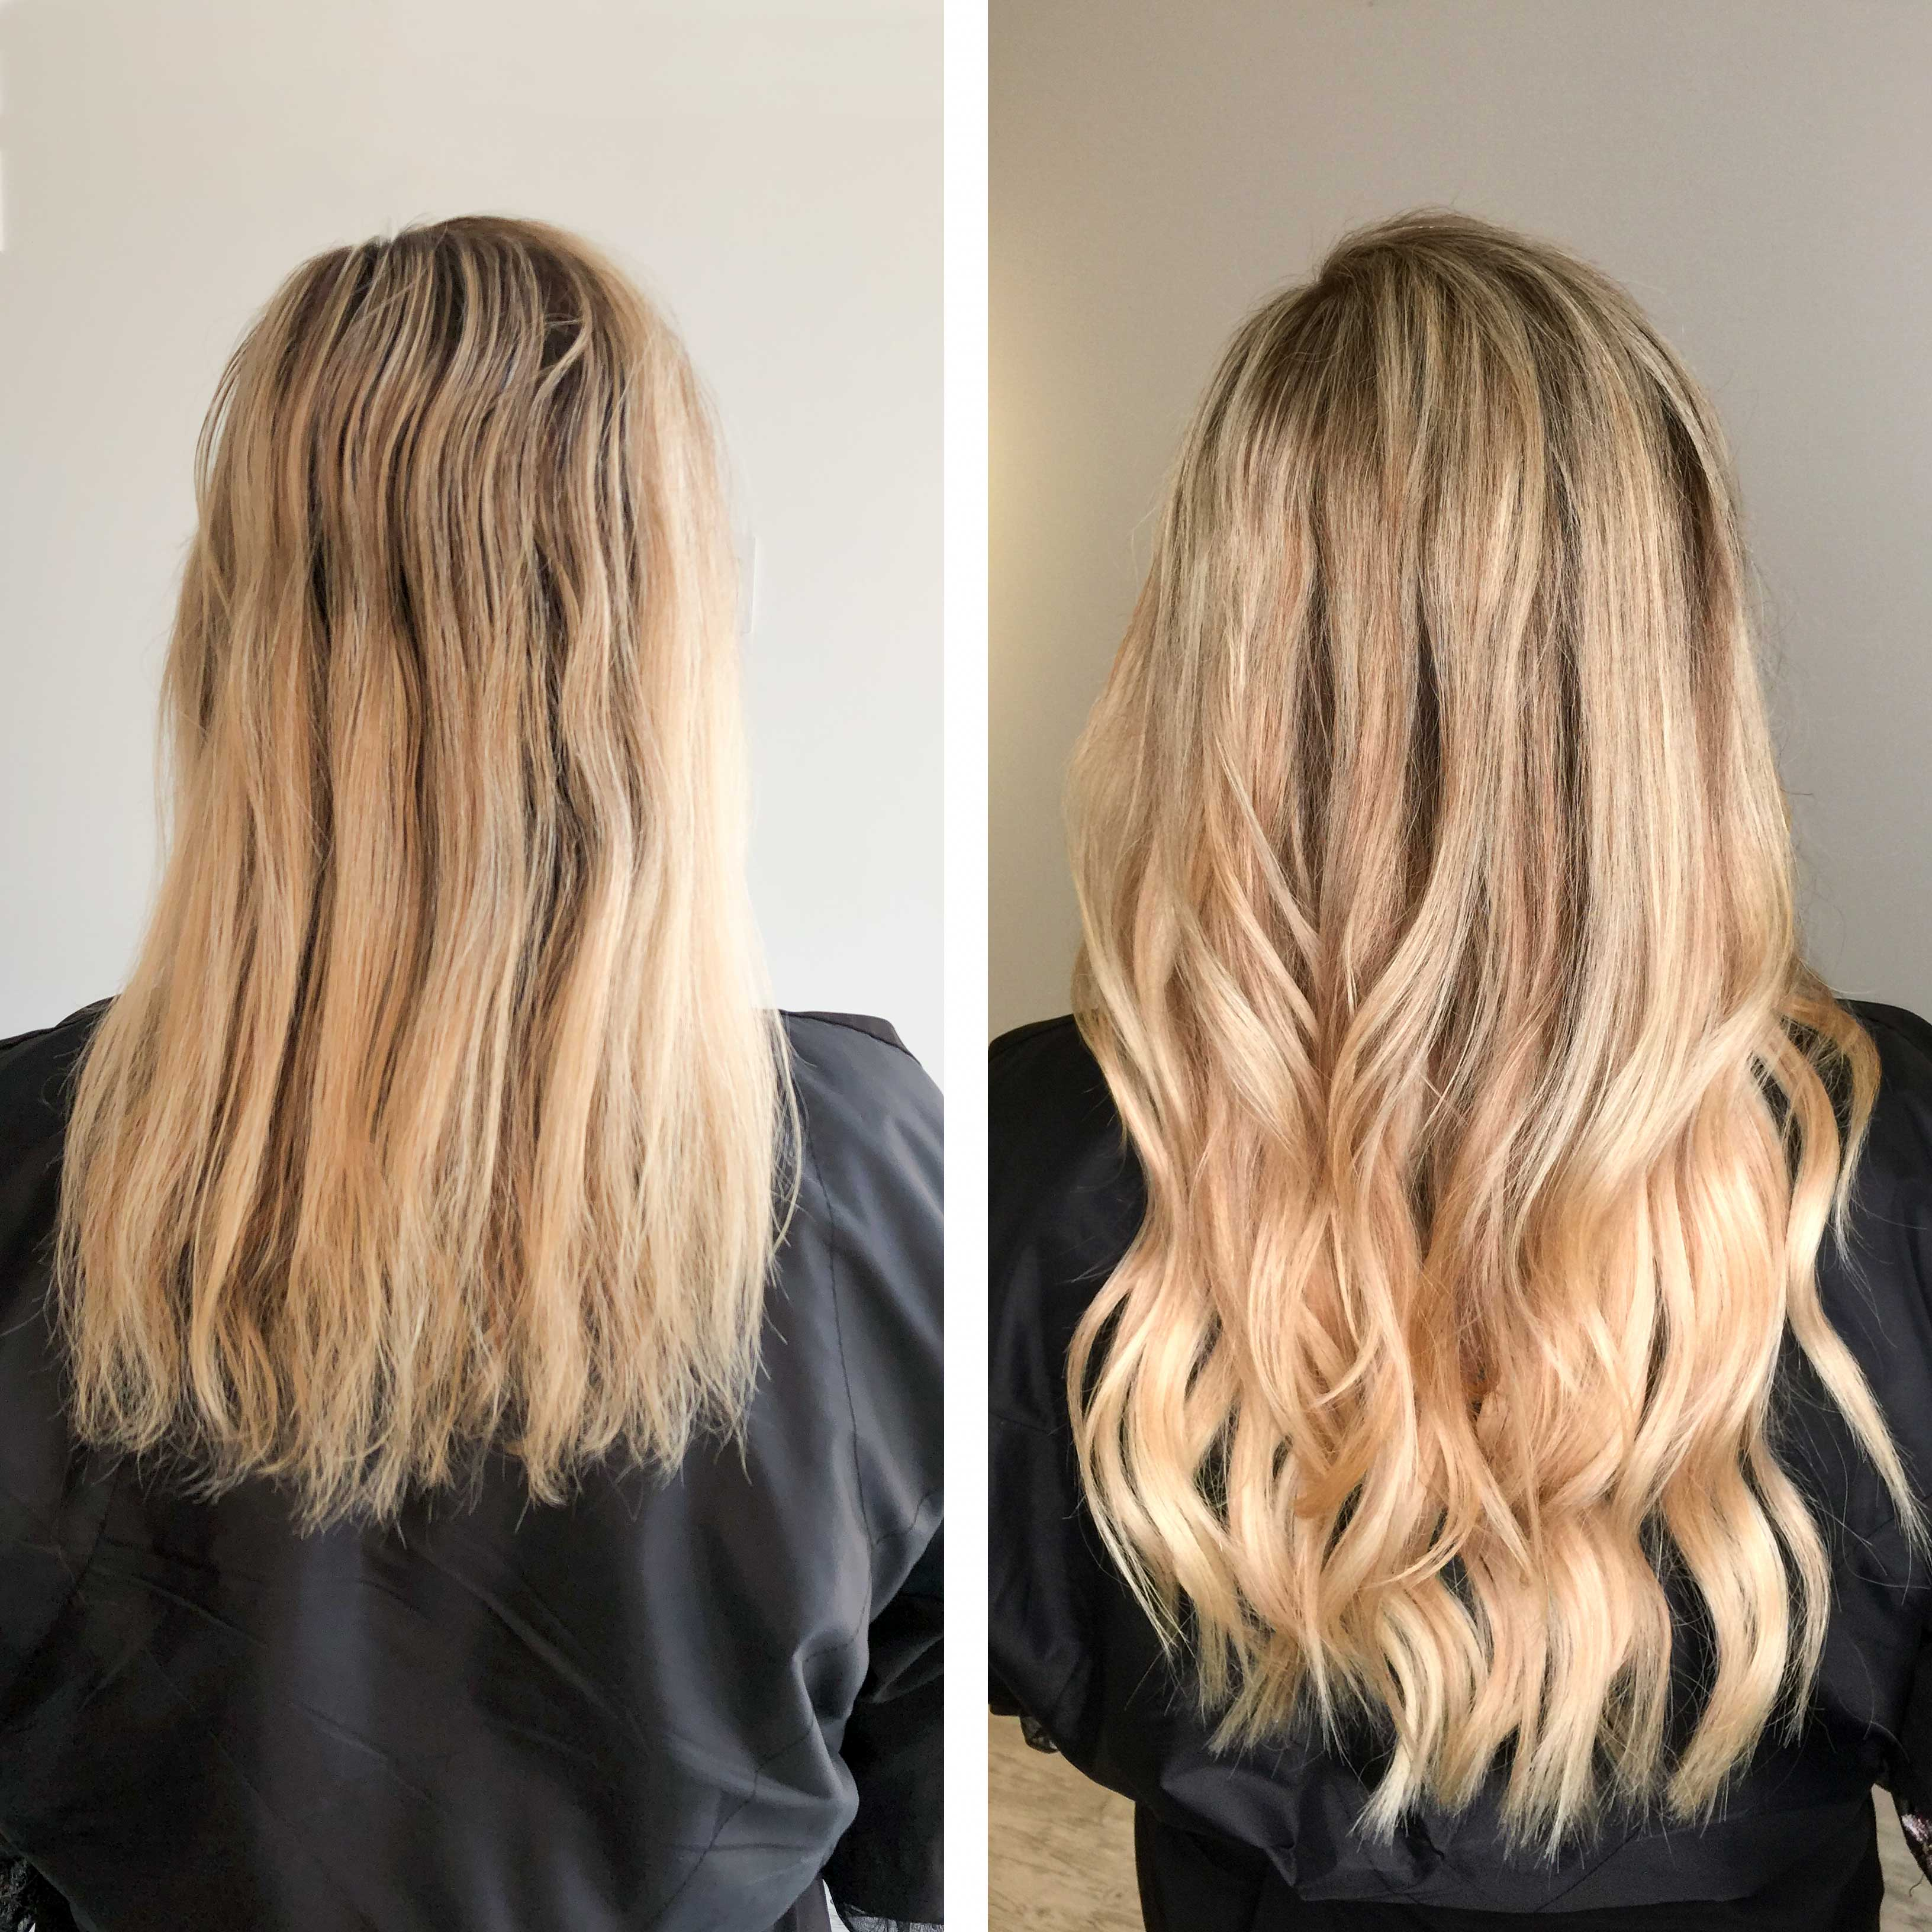 Hand Tied Hair Extensions by the Best Salon in Greenville SC | The  Beautiful Co. Salon